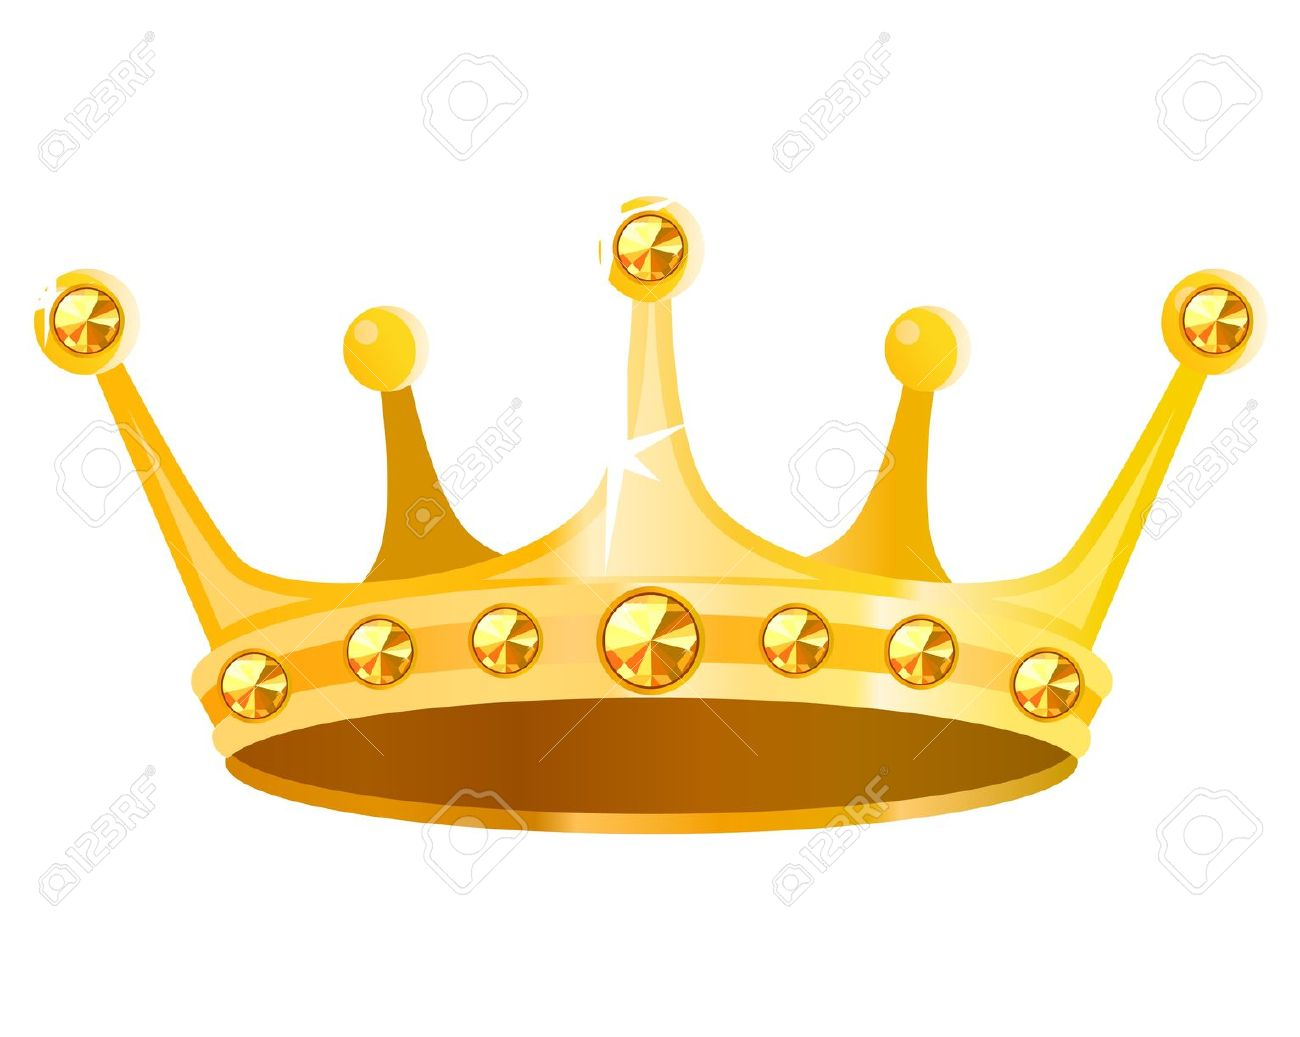 Gold king crown clip art image download Gold crown king clipart - ClipartFest image download